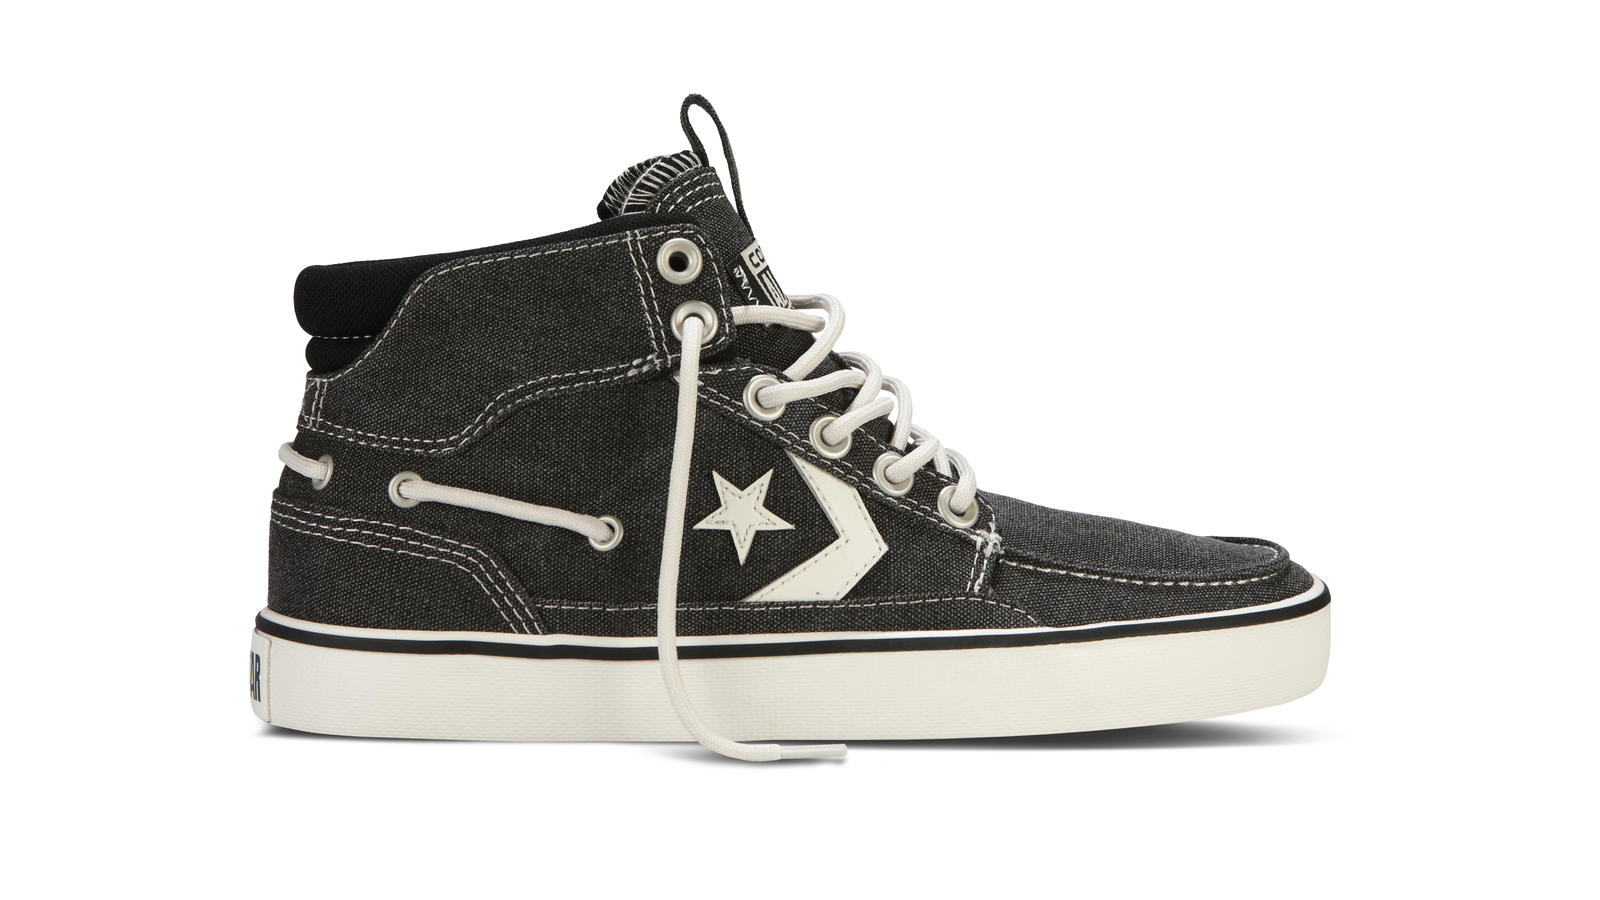 Converse Launches Its SpringSummer 2013 CONS Collection